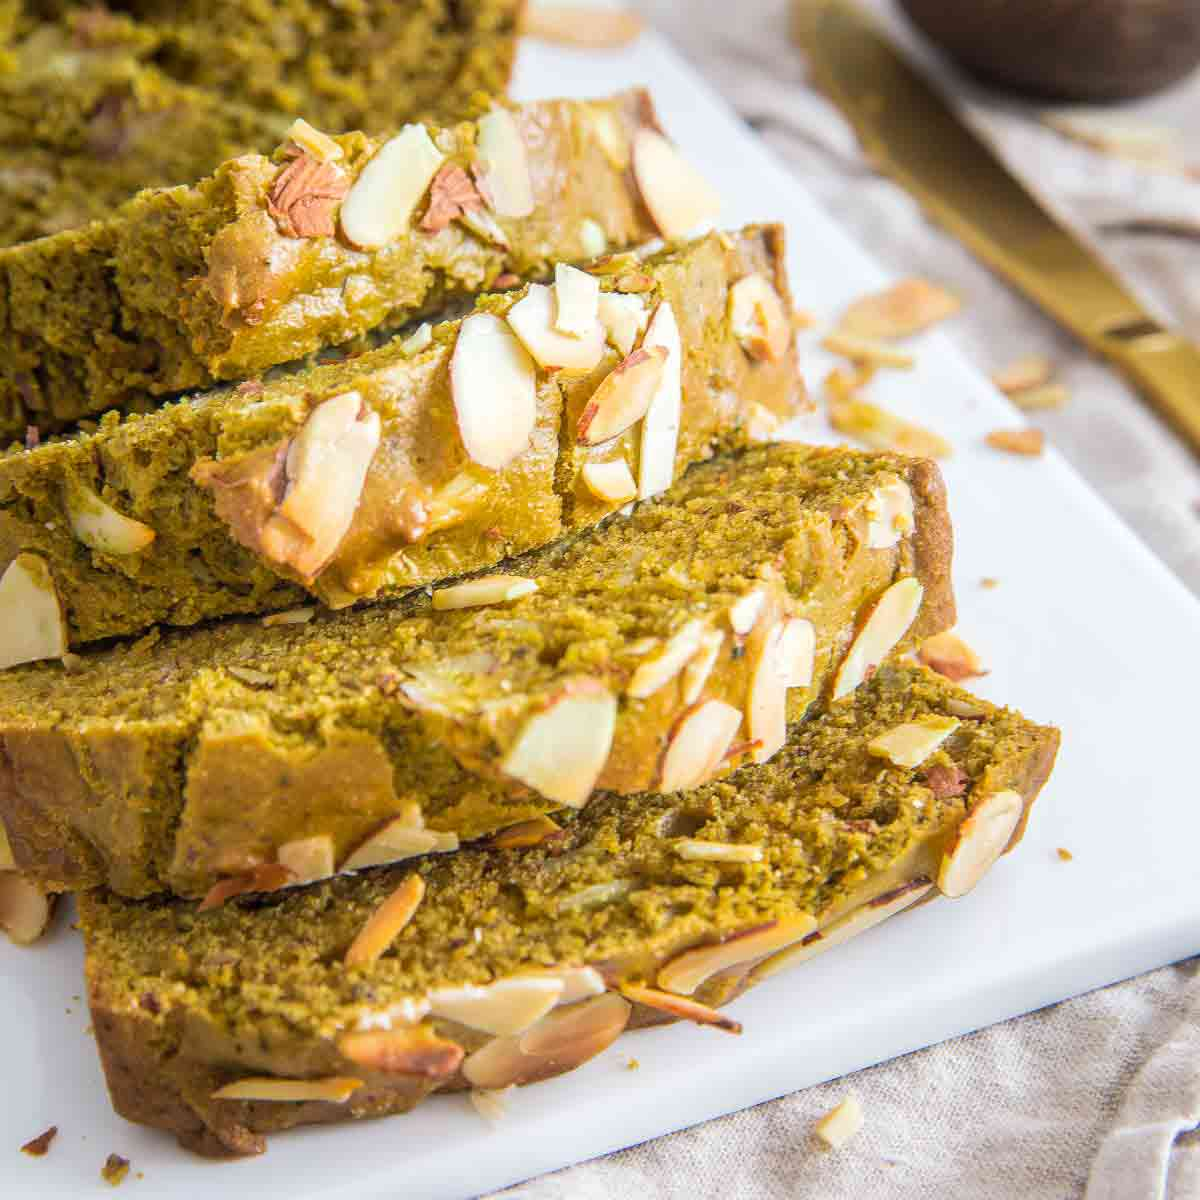 Green tea bread made with sliced almonds, almond flour and almond extract is packed with flavor in each moist slice.